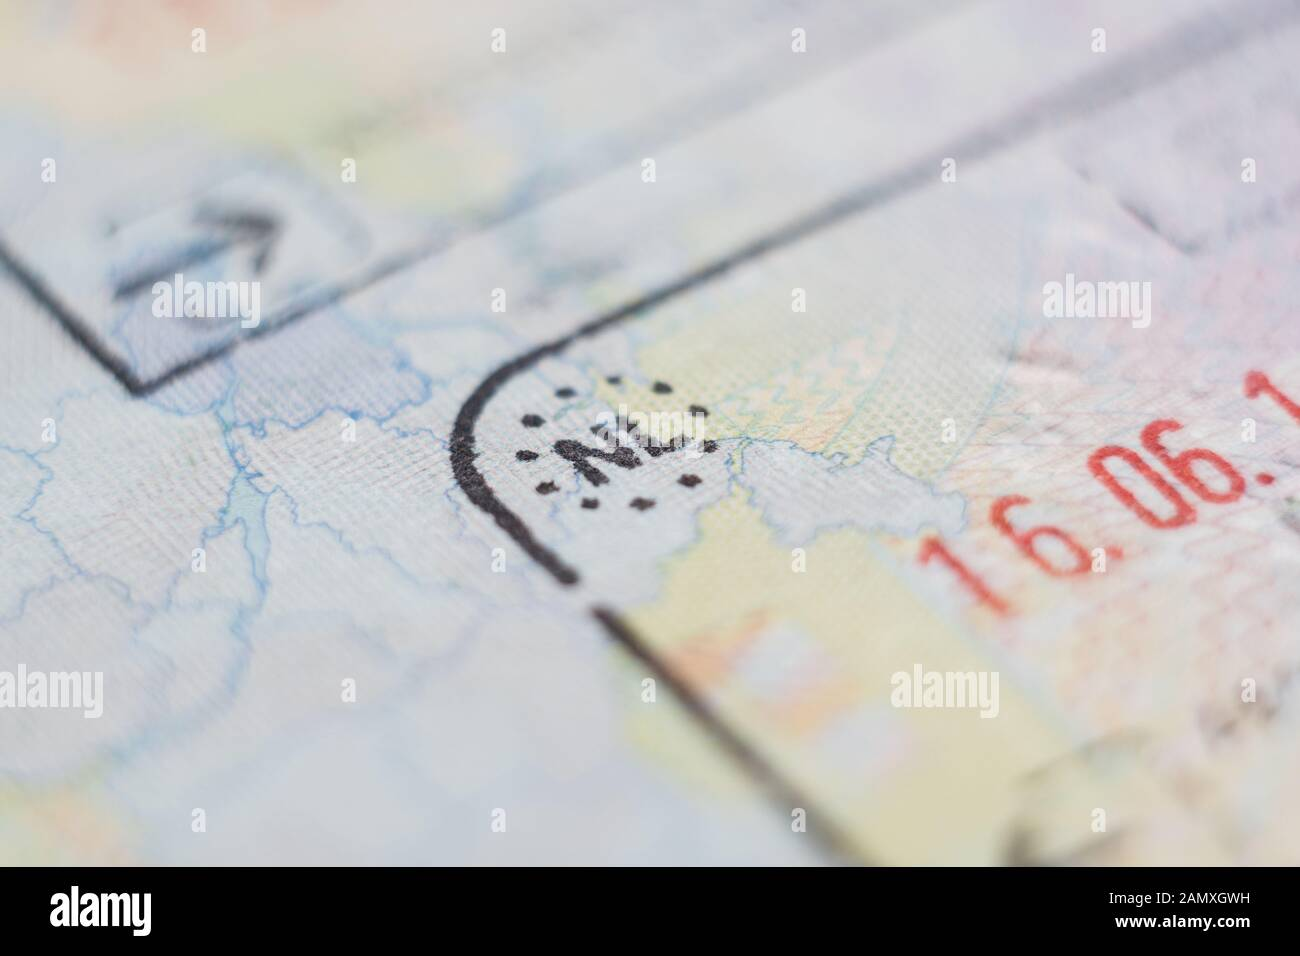 Close-up macro detail of European Union border control customs admission stamp with airplane symbol in focus and Netherlands country sign Stock Photo